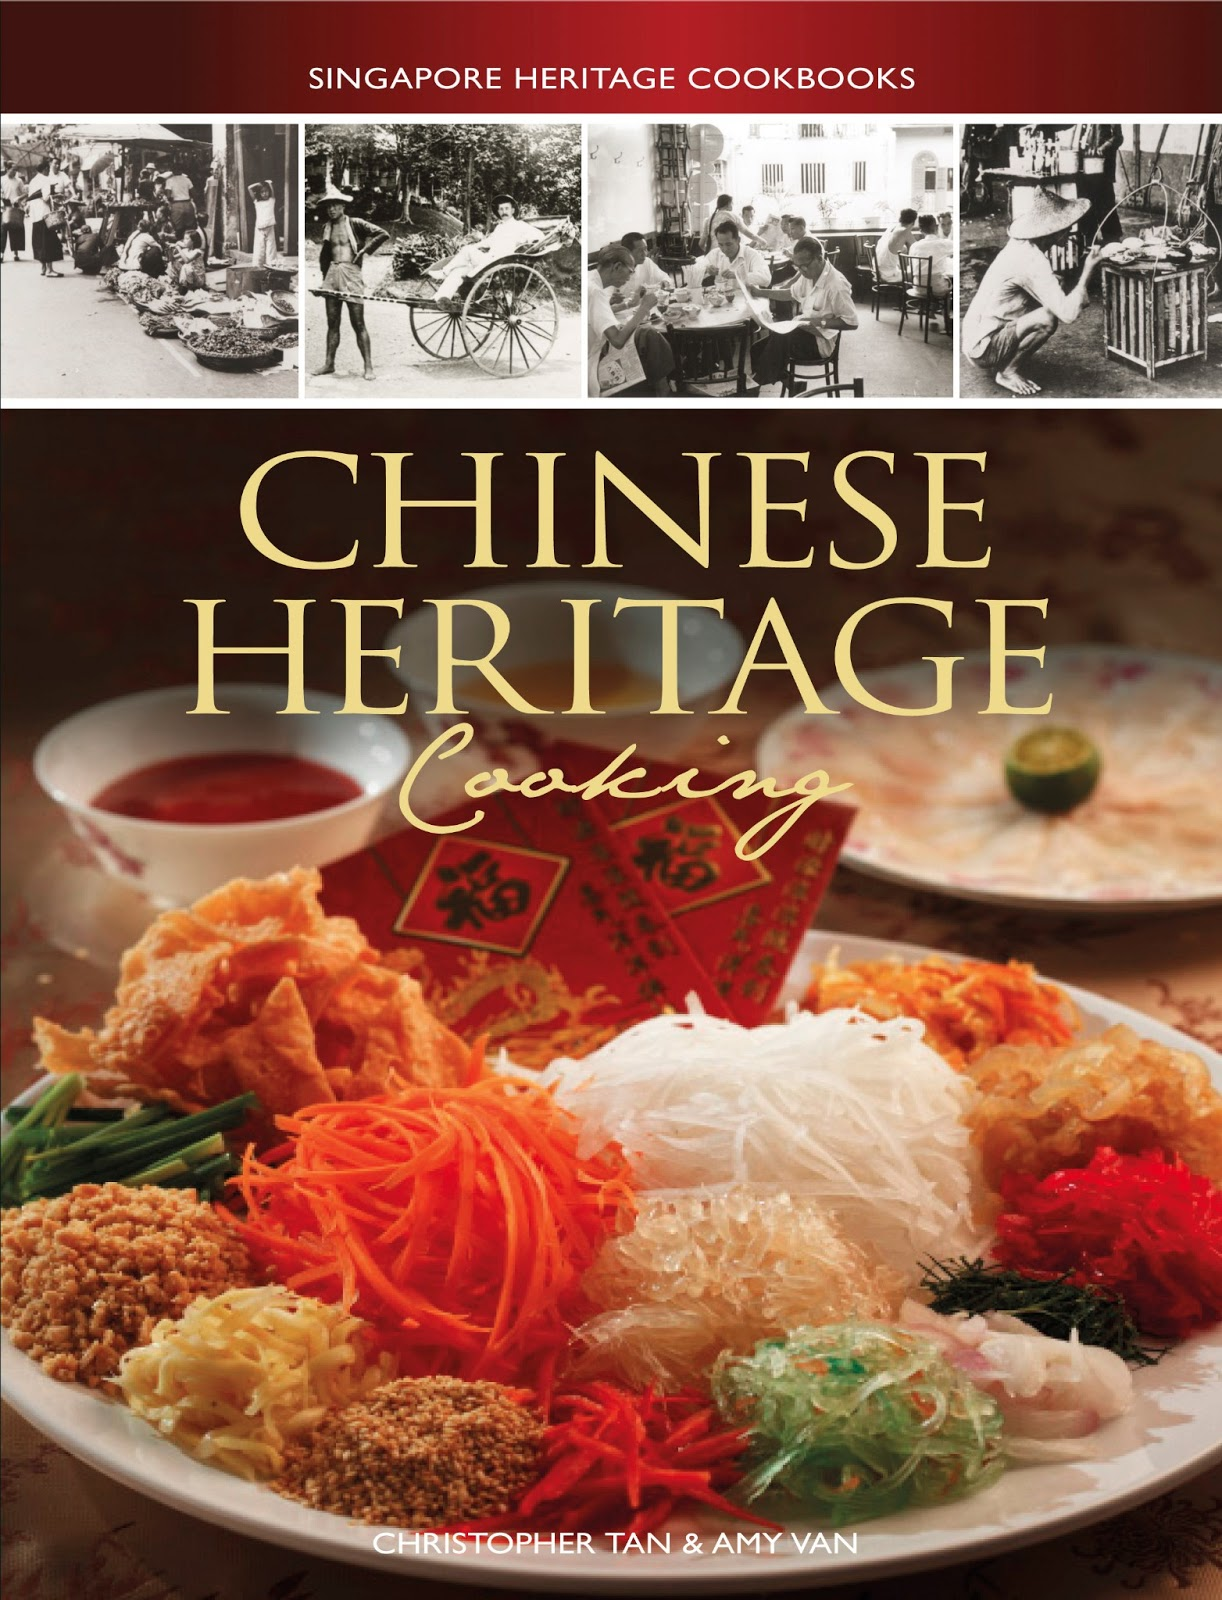 Gastronommy march 2013 chinese heritage cooking recipes singapore amy van christopher forumfinder Images